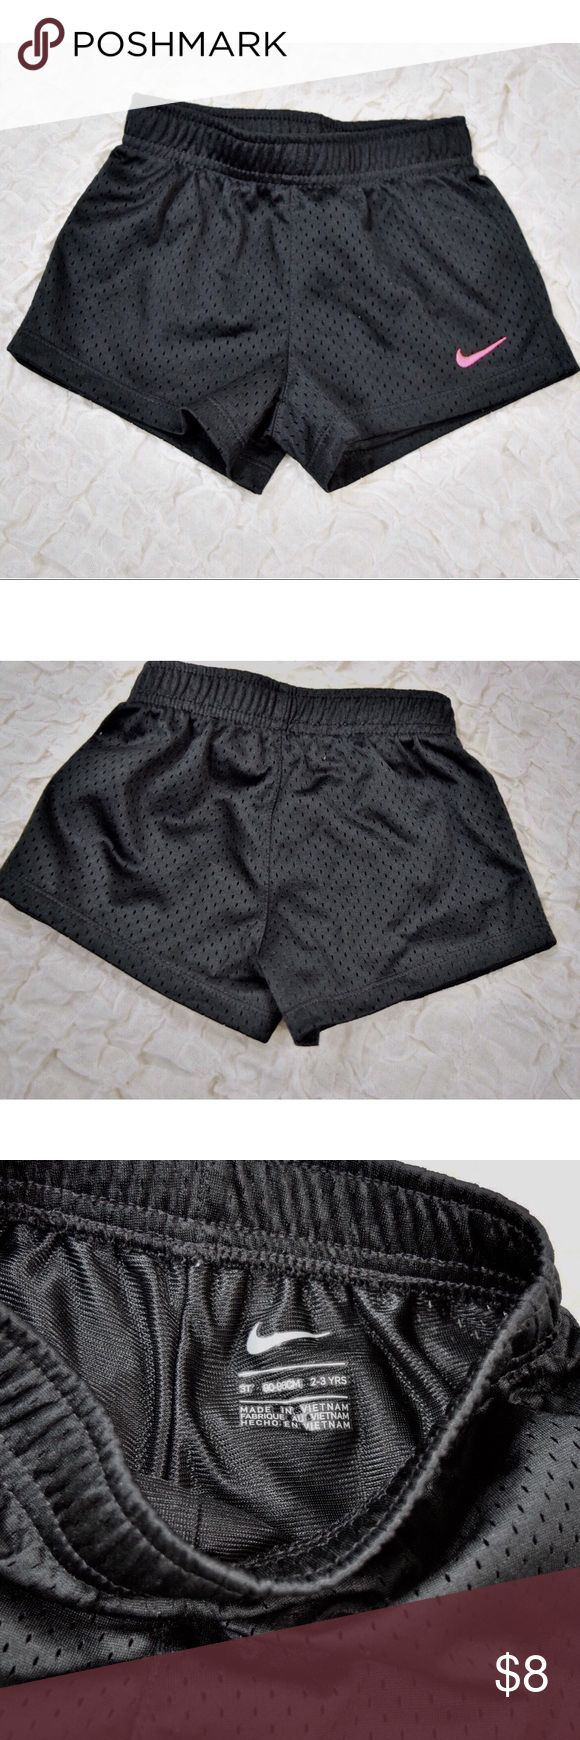 Black Nike toddler girl shorts Adorable toddler girl Nike shorts💕Size 3T or 2-3 years💕Black with pink swoosh💕100% polyester💕Like new-maybe worn a few times💕Smoke and pet free home Nike Bottoms Shorts